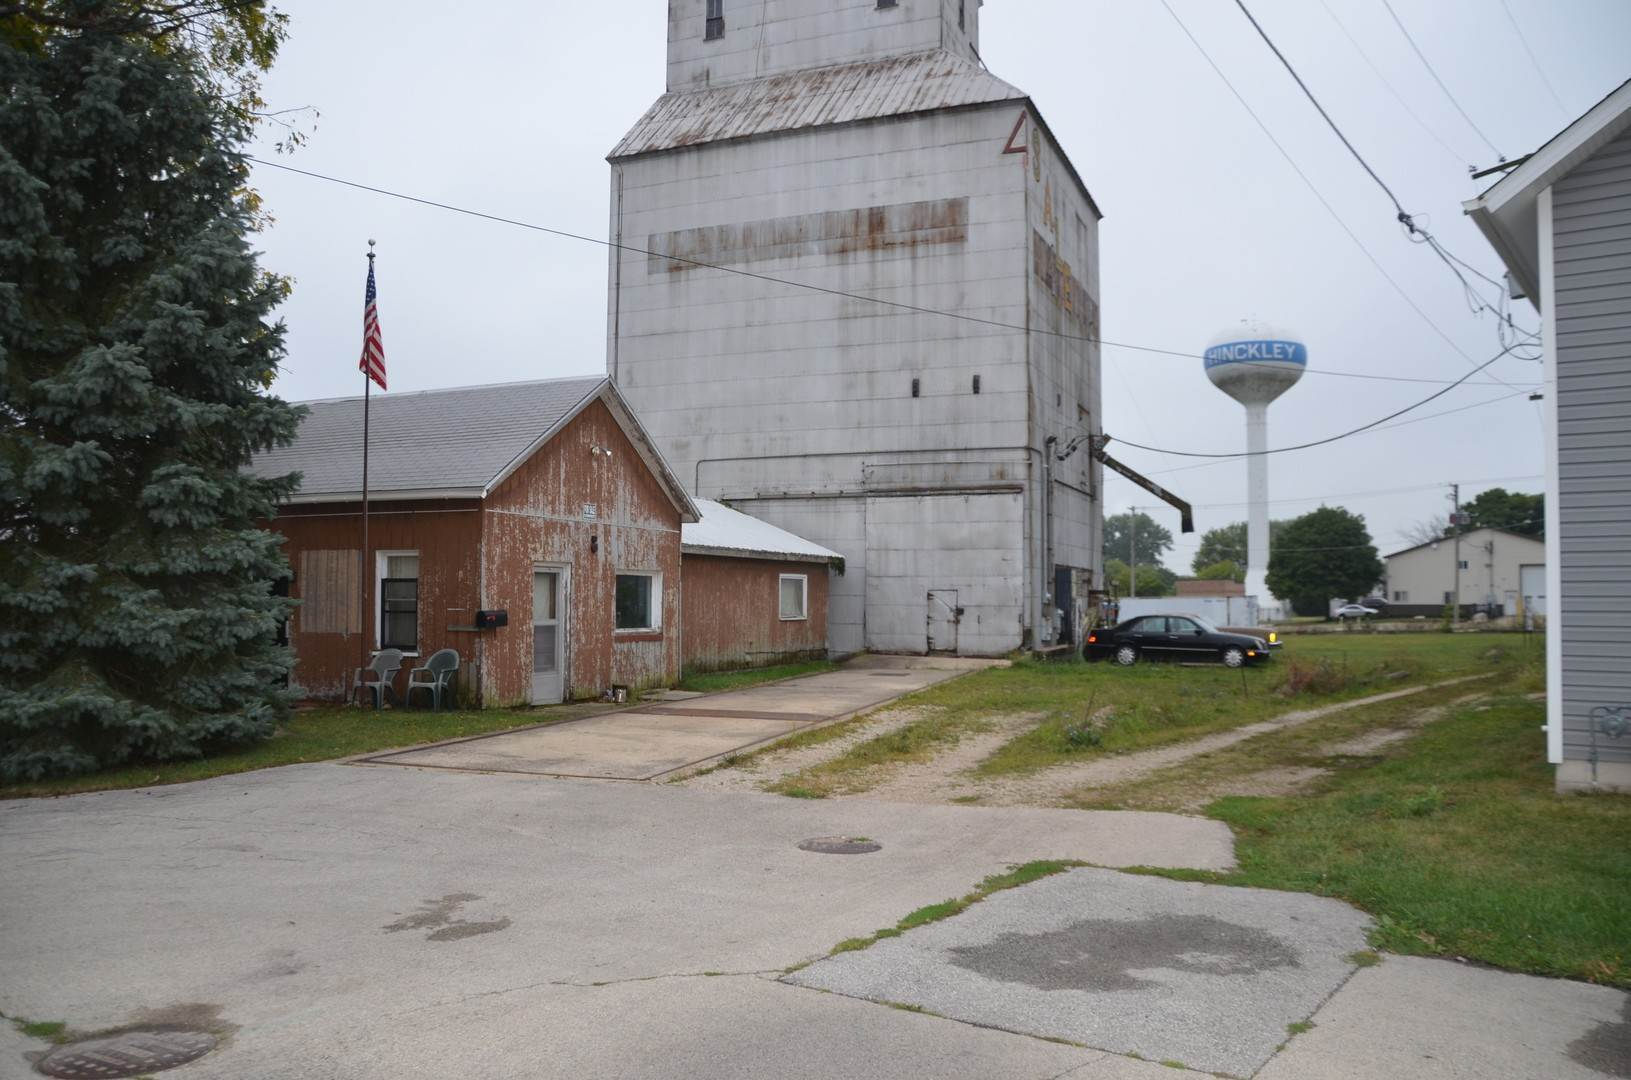 Commercial for Sale at 137 S May Street Hinckley, Illinois 60520 United States